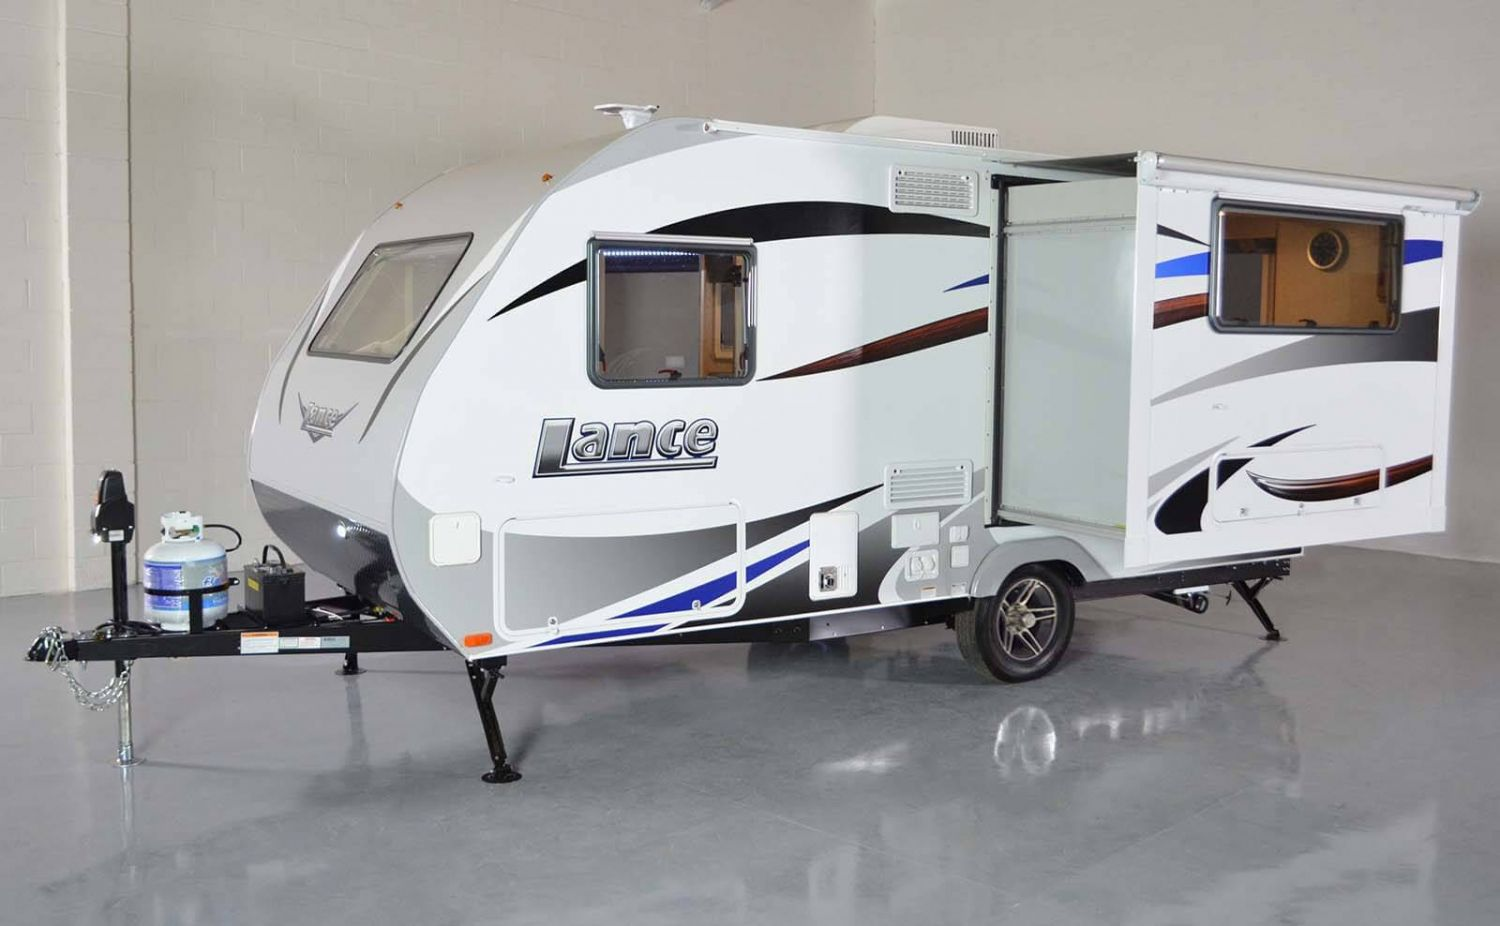 jay offers thanks light feather the additional features lite small travel ultra jayco bathroom inc tent strong sectionalized with trailers archive tools